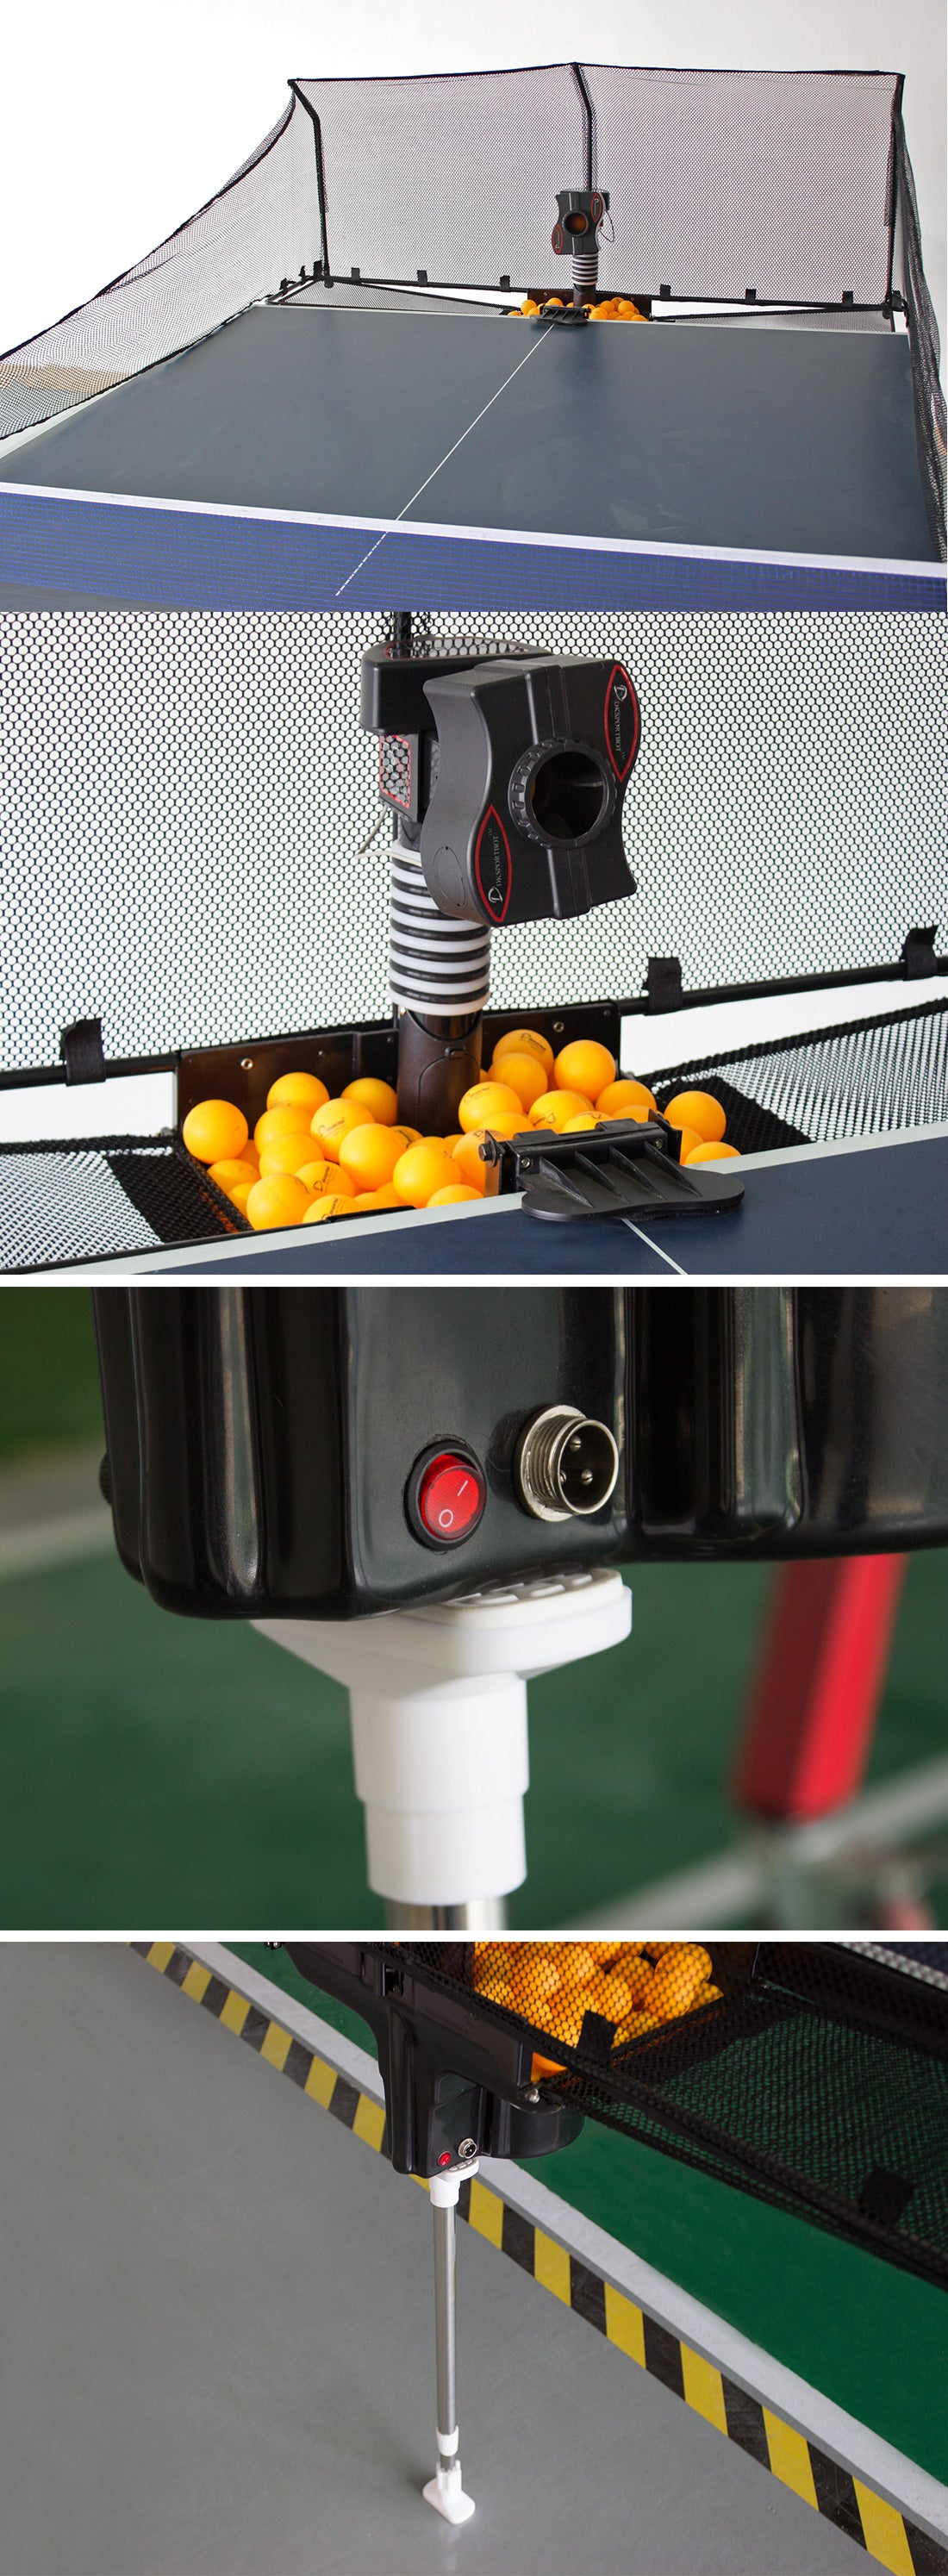 Table Tennis Training Ball Throwing Machine : Product Display 2